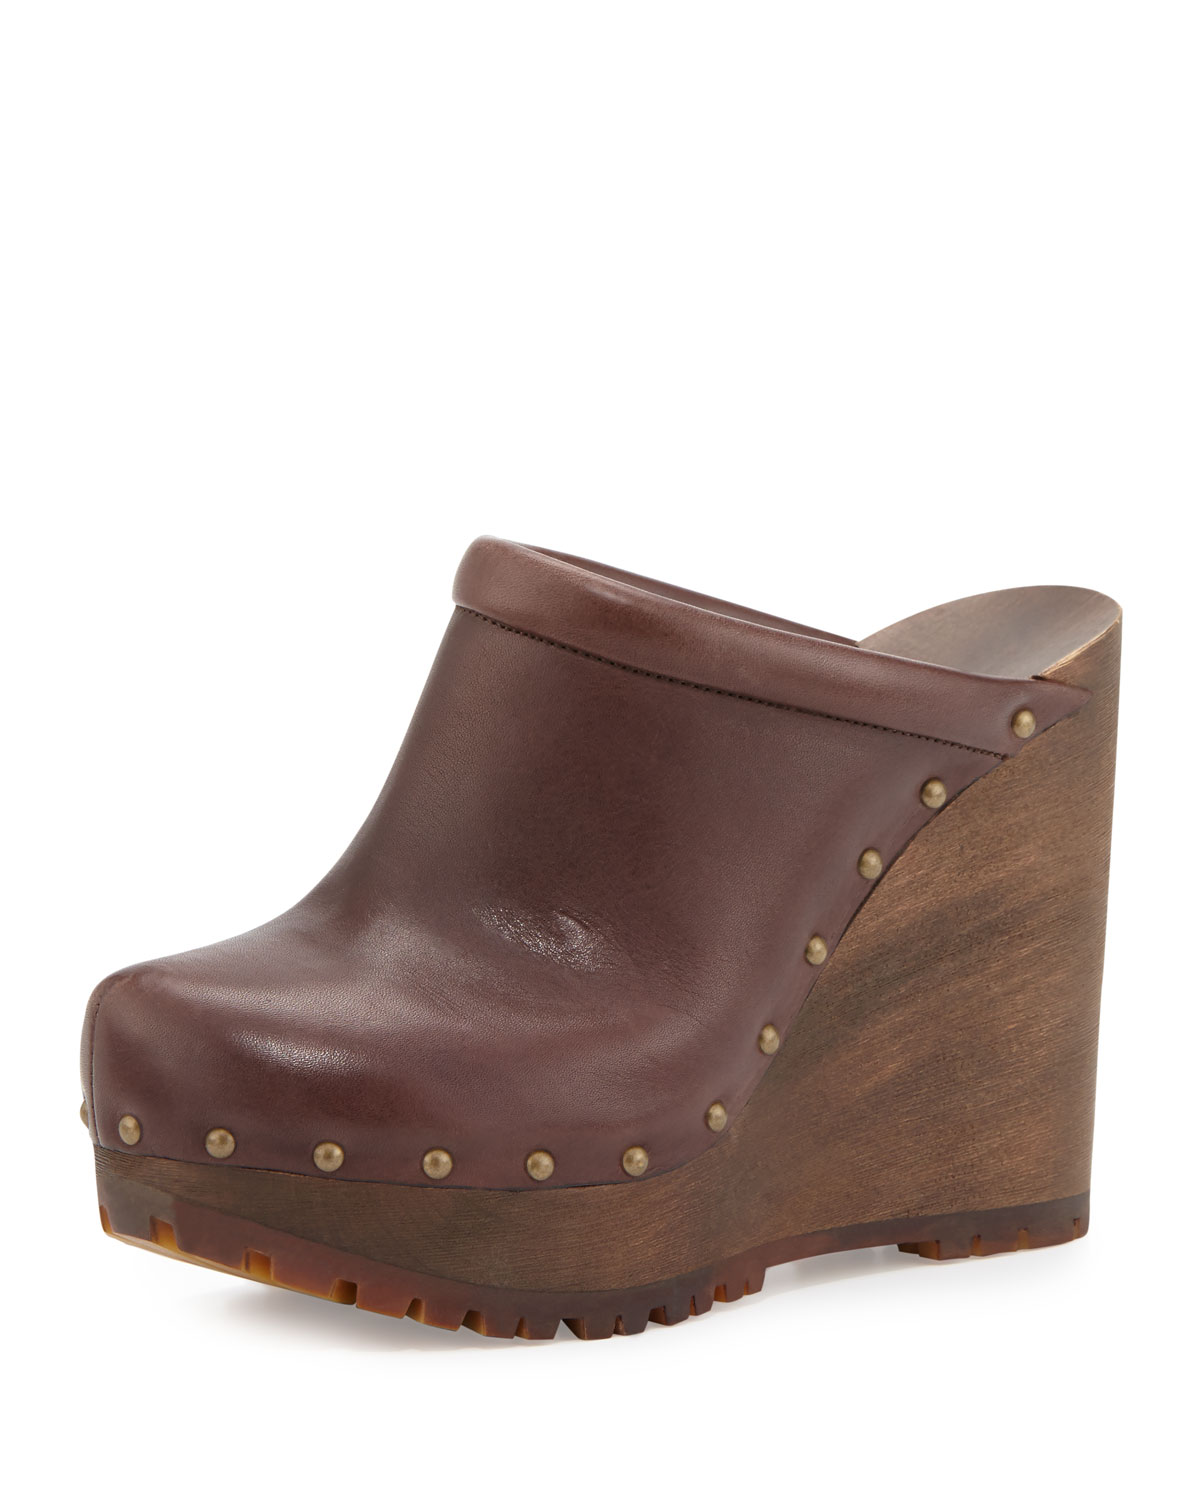 476b8169db8 See by Chloe Clive Studded Leather Clog, Brown Mousse | Neiman Marcus